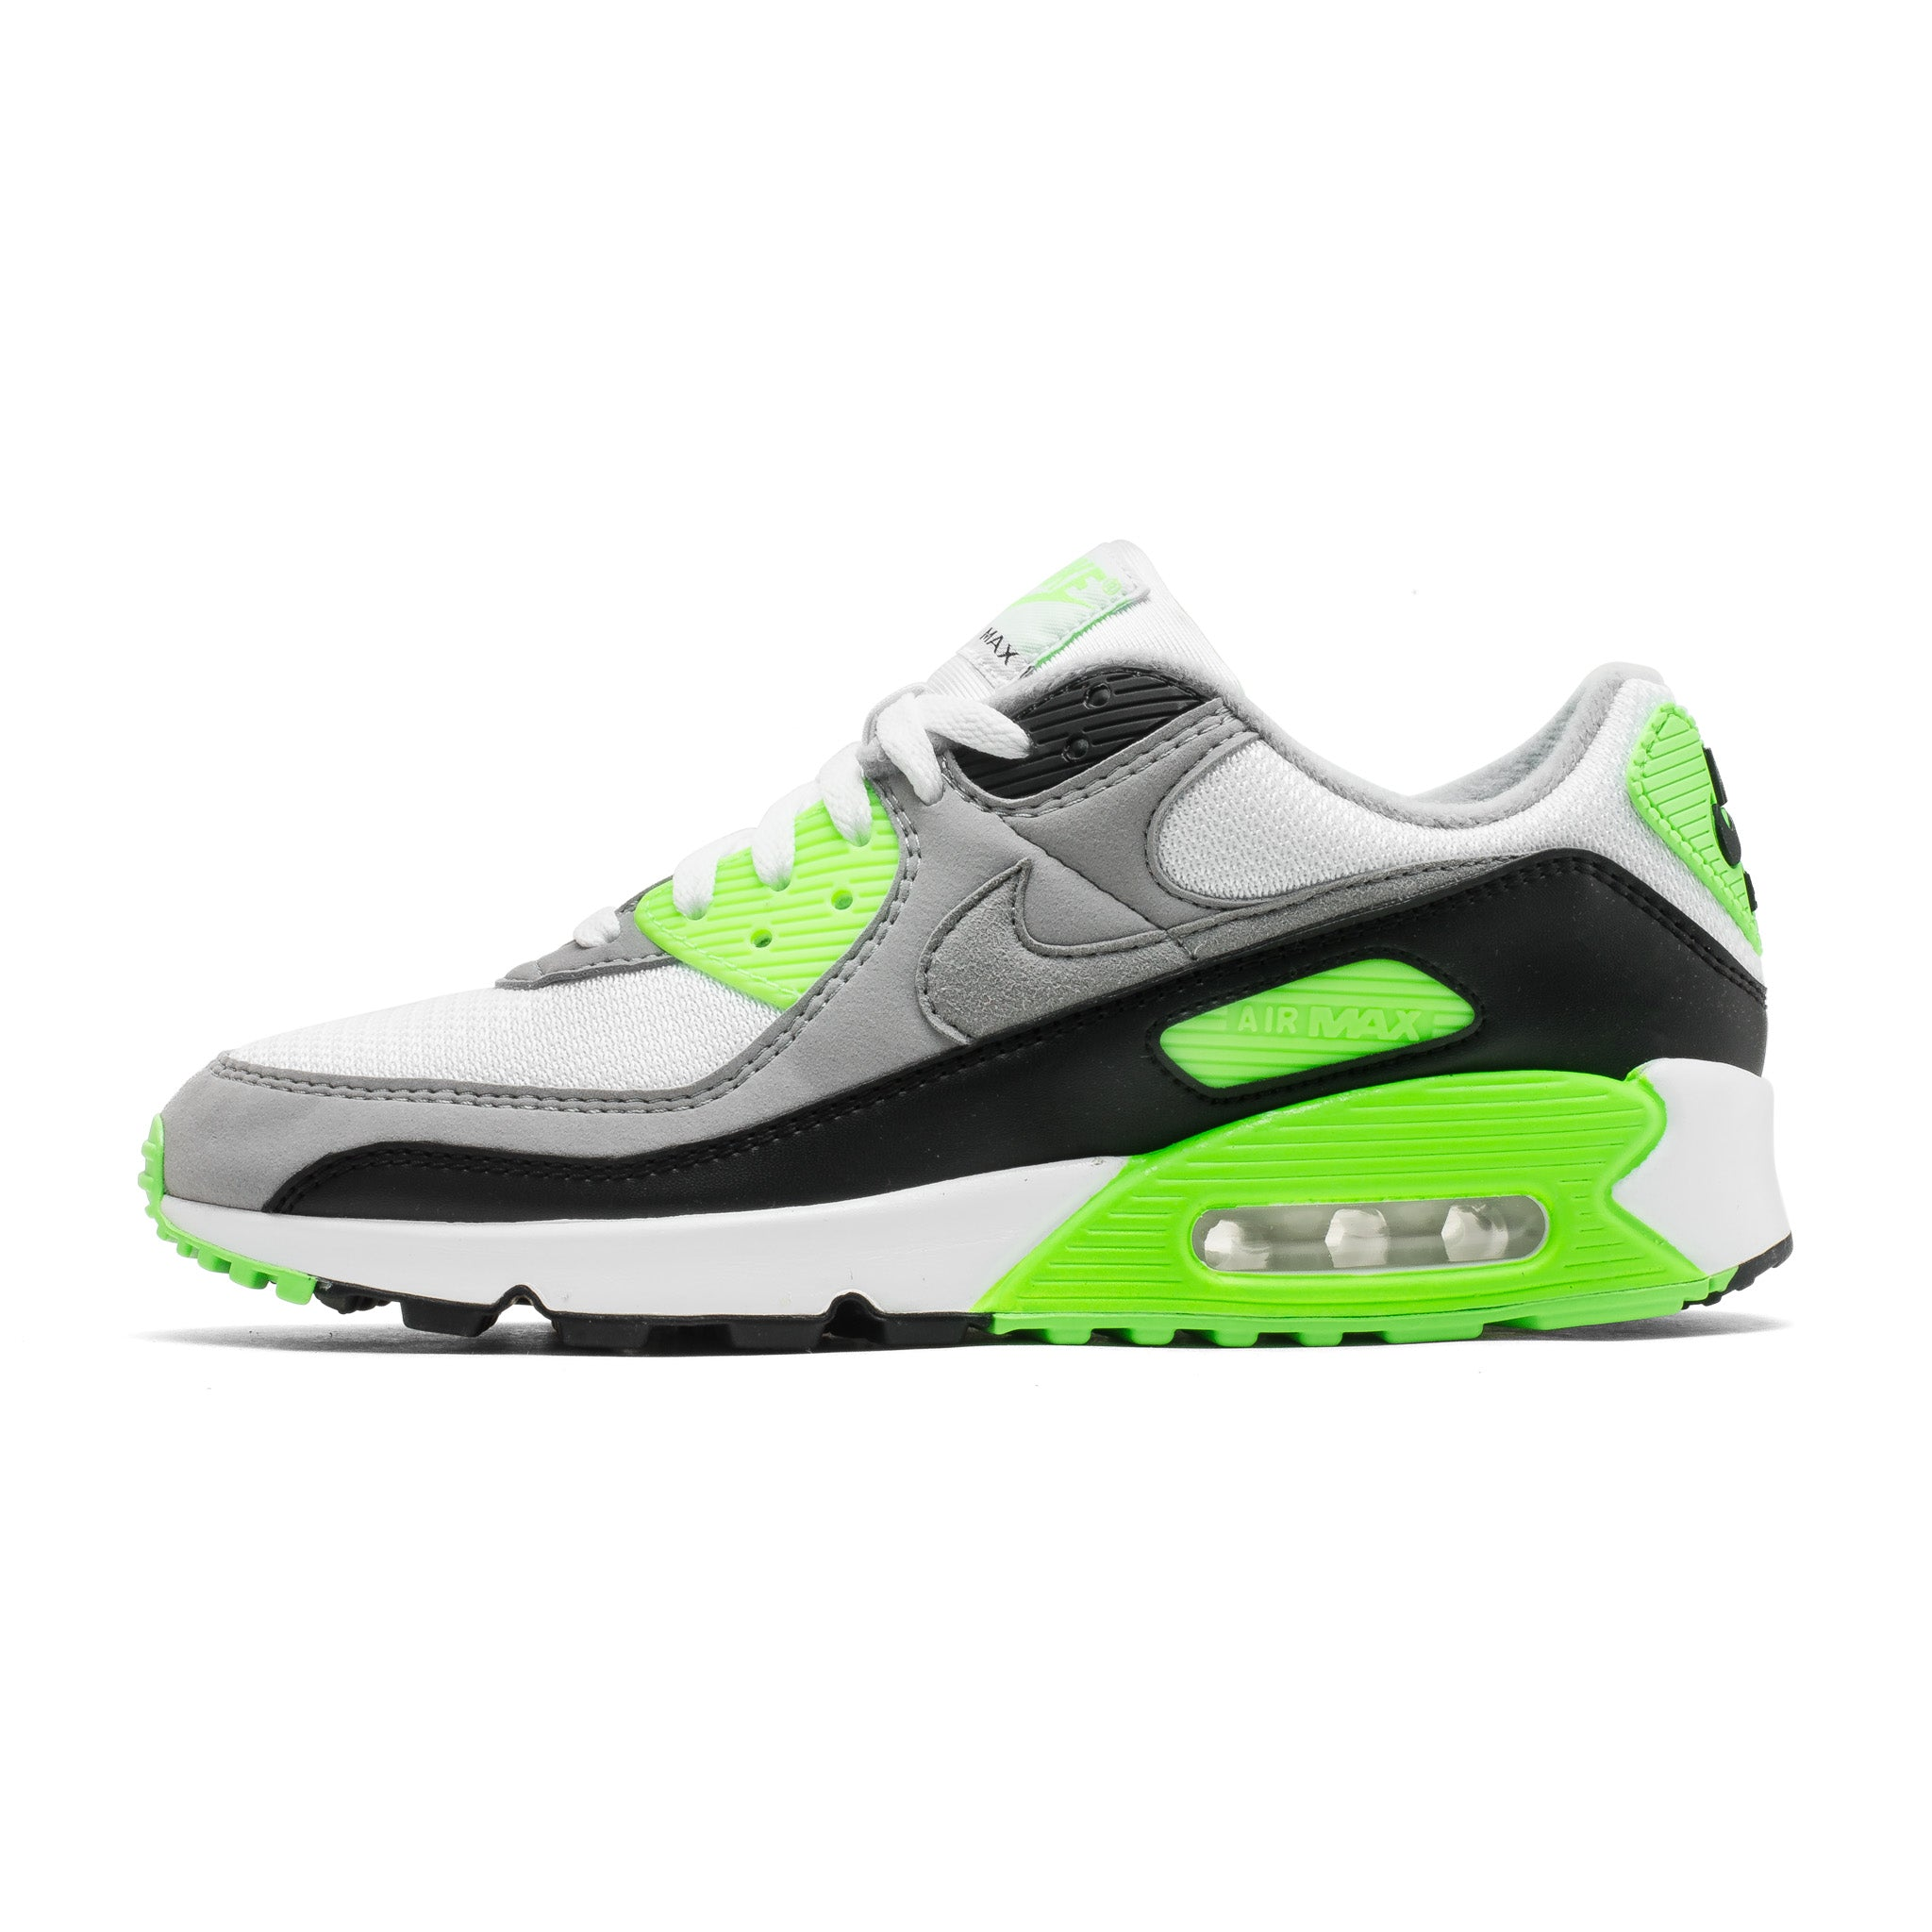 Air Max 90 CW5458-100 White